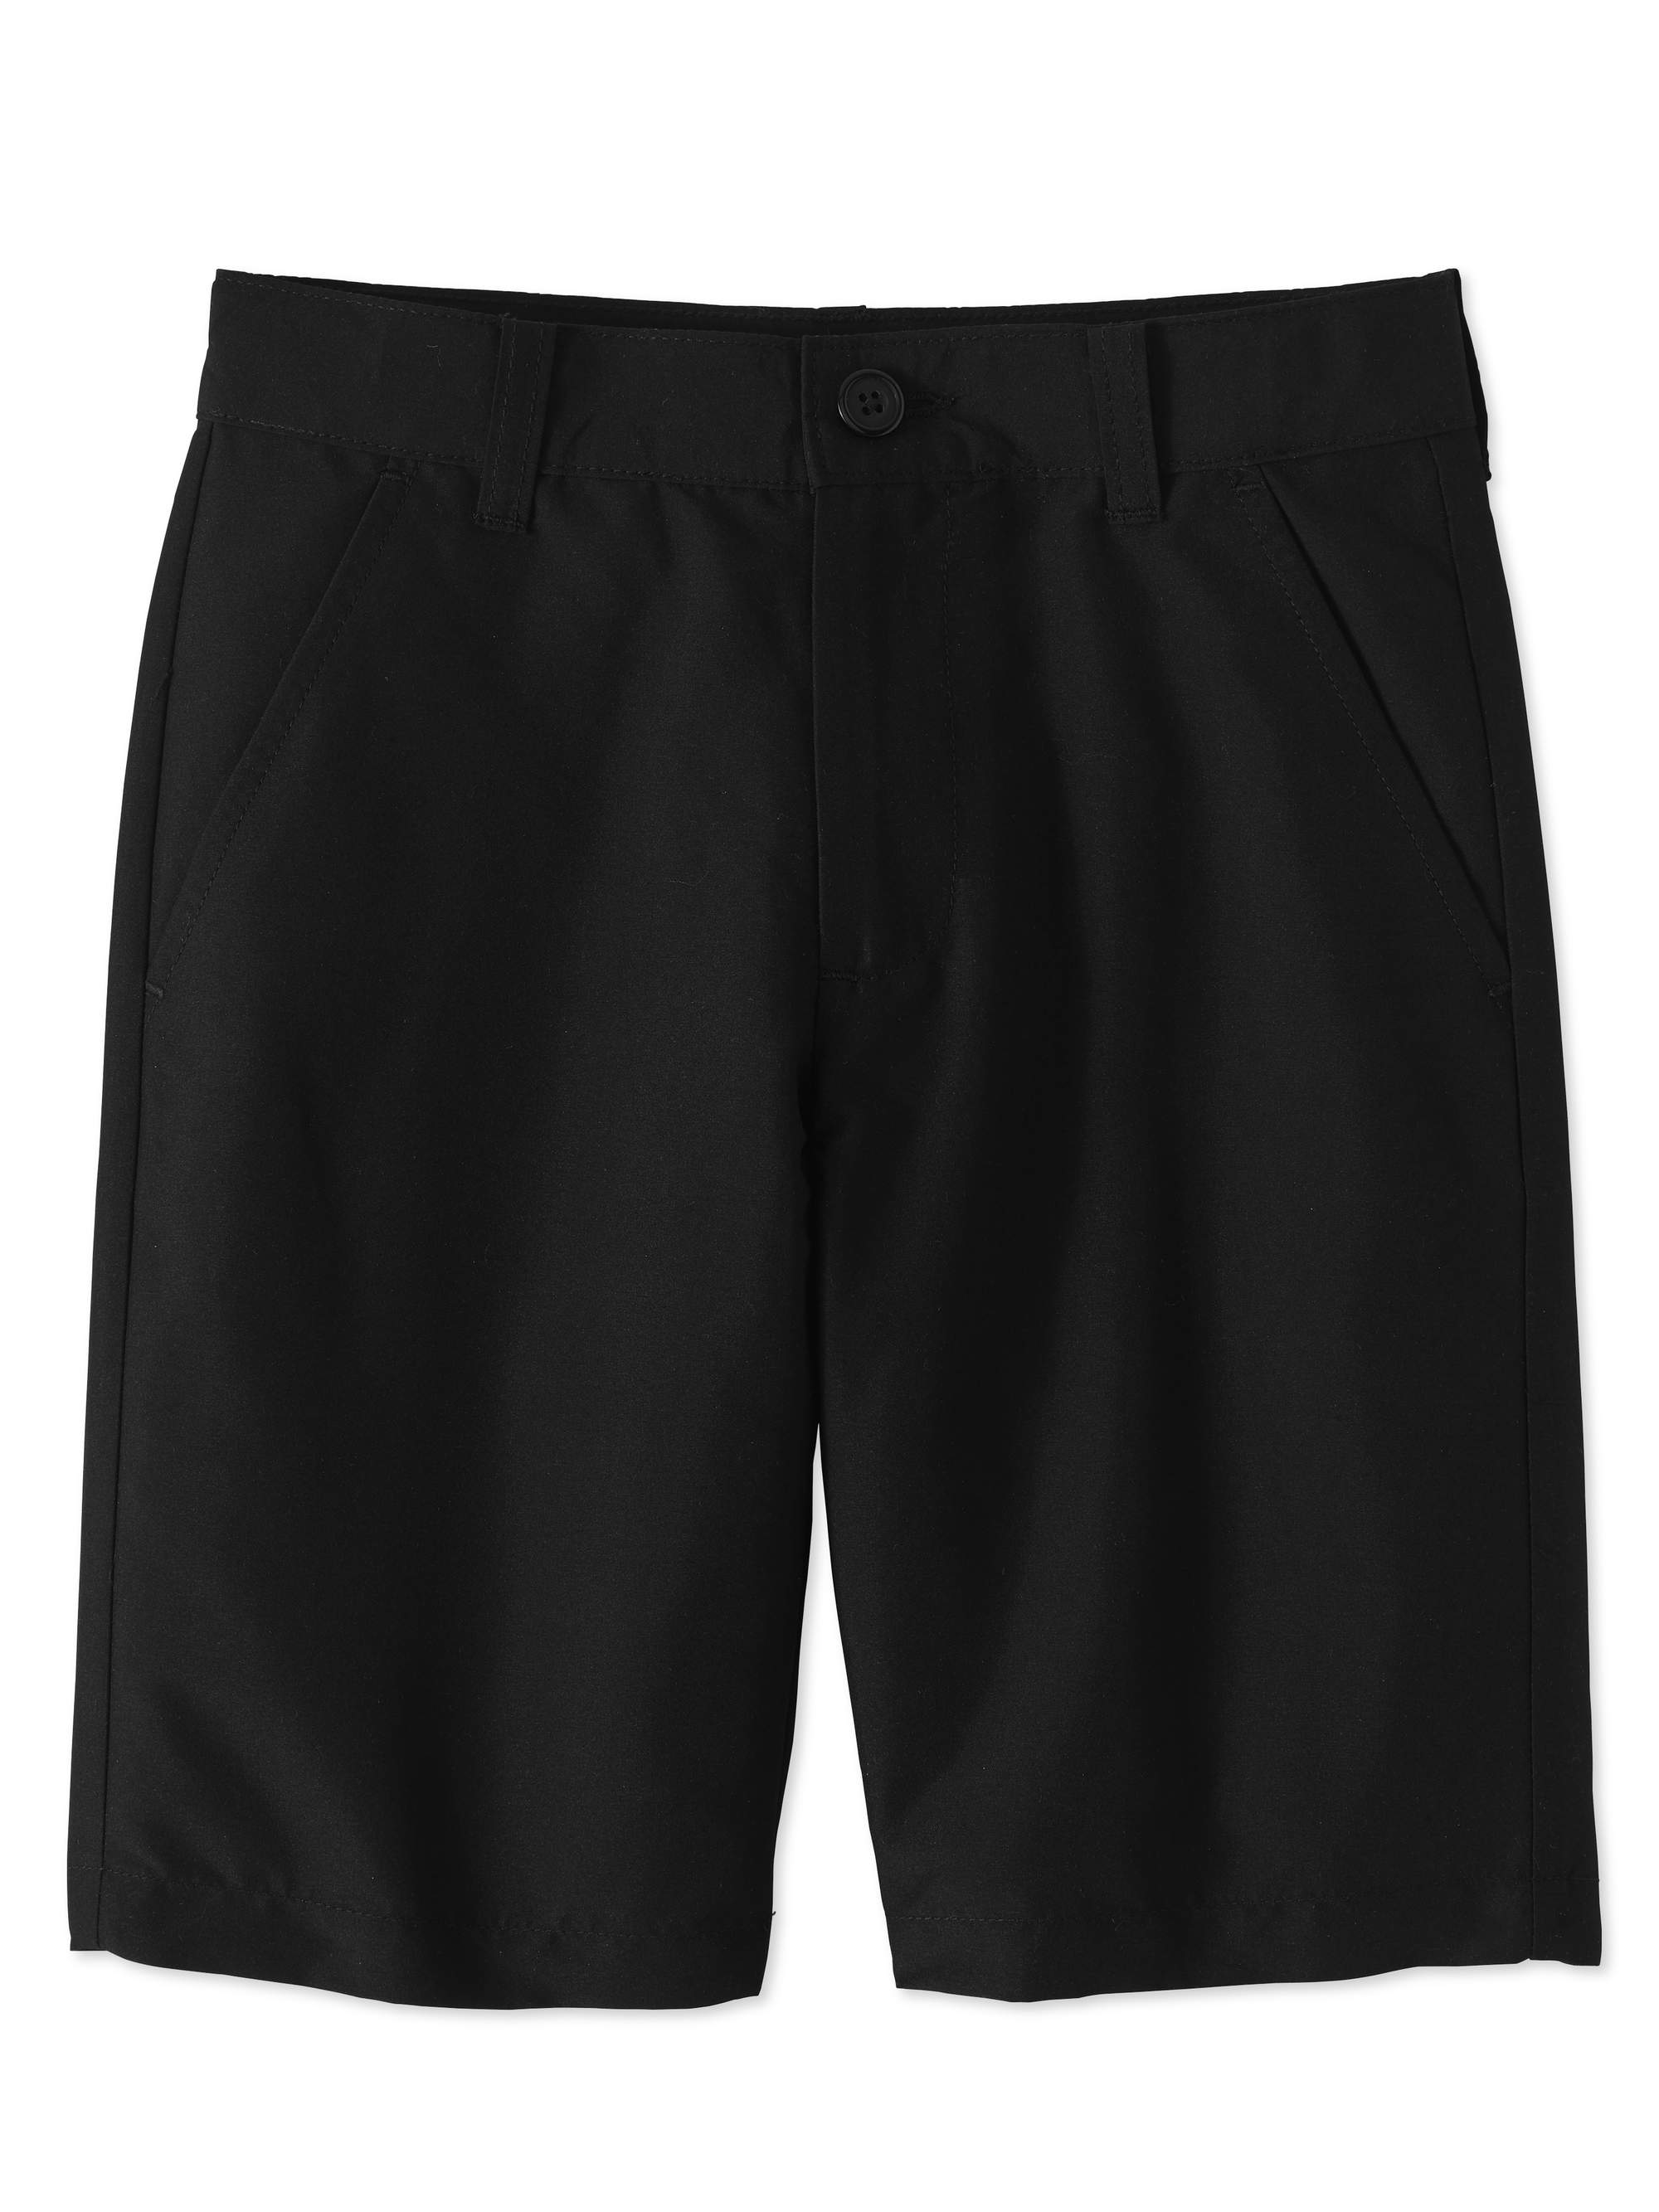 Boys Husky School Uniform Performance Shorts